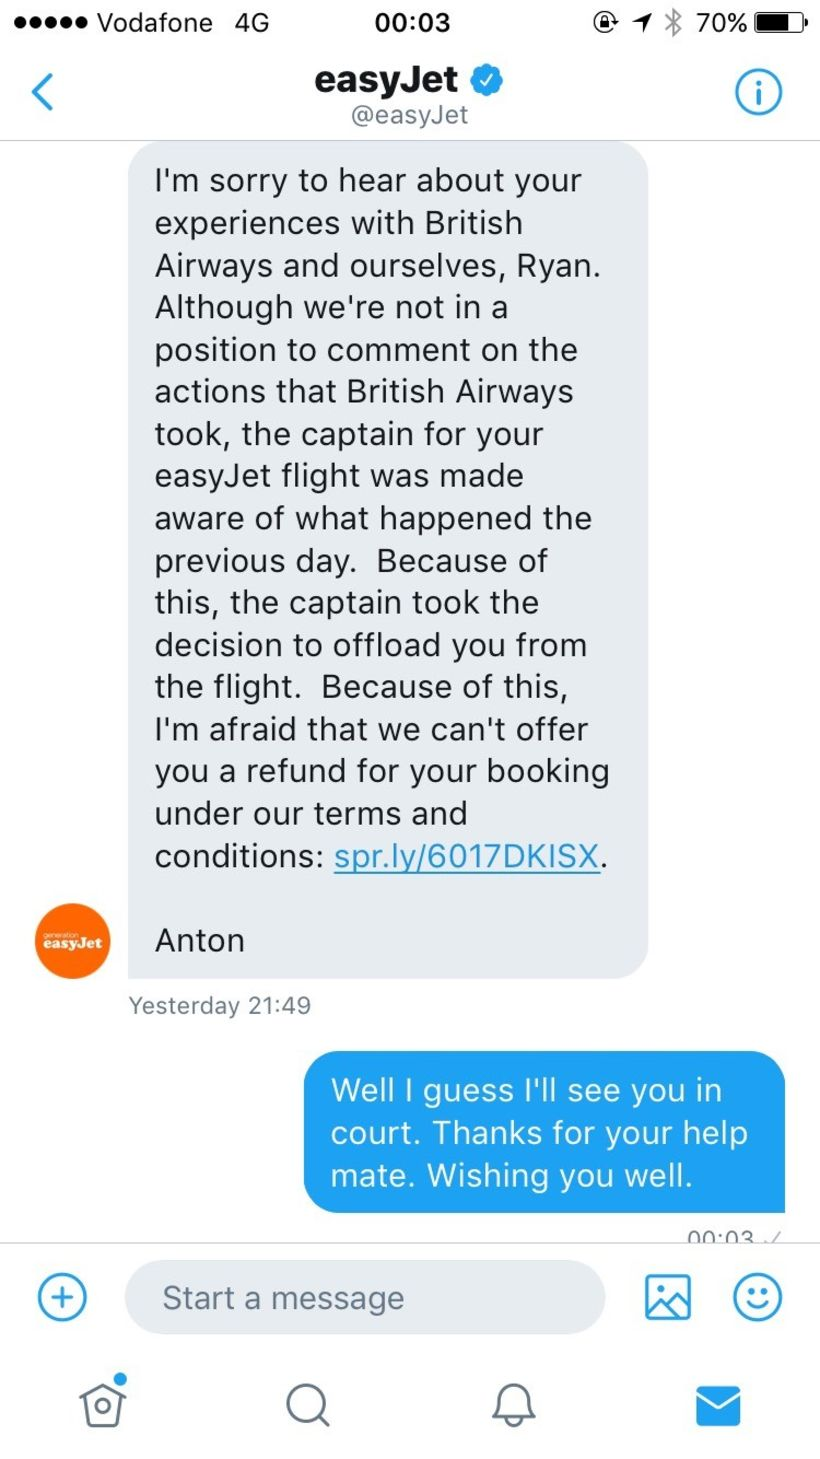 ryan williams easyjet